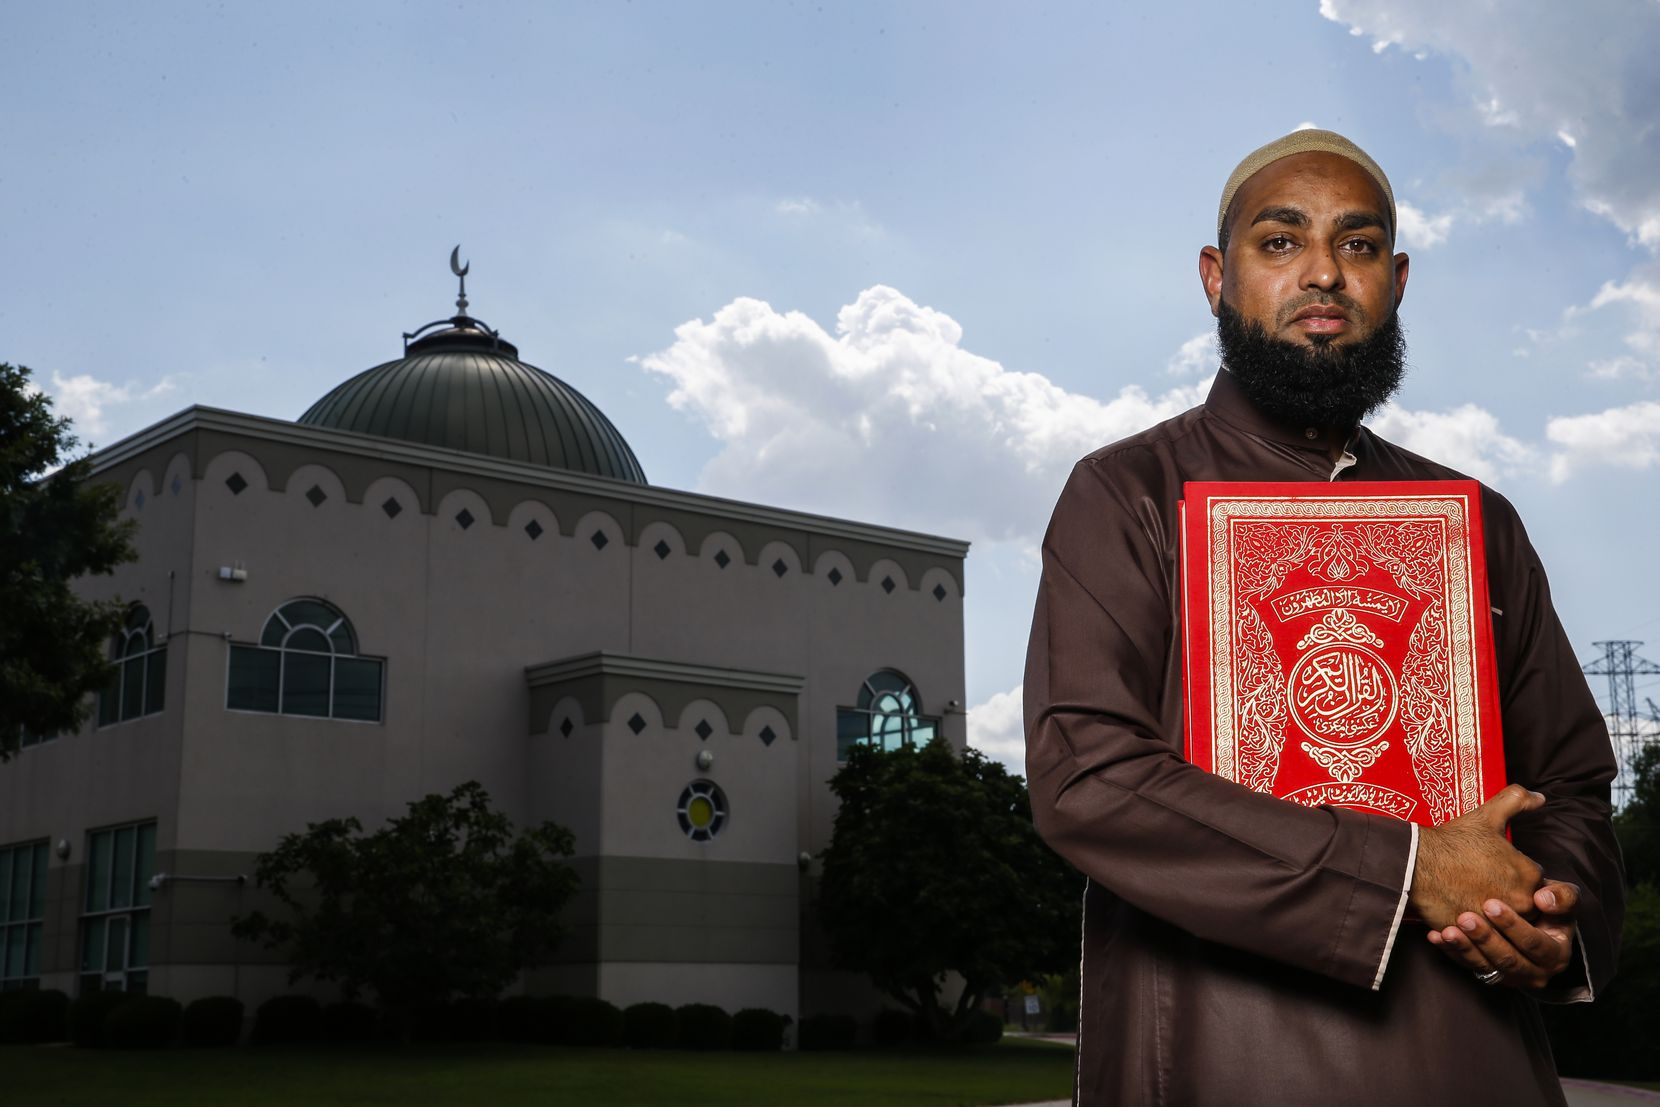 Imam Azhar Subedar at Plano Mosque on Thursday, June 4, 2020 in Dallas.  Since Donald Trump is No. 45 and he is 3.5 years into his presidency, I thought this verse is most fitting. Quran 45:35: That is because you took the signs of Allah in ridicule, and the worldly life deluded you. So that Day, they will not be removed from it, nor will they be asked to appease [Allah].